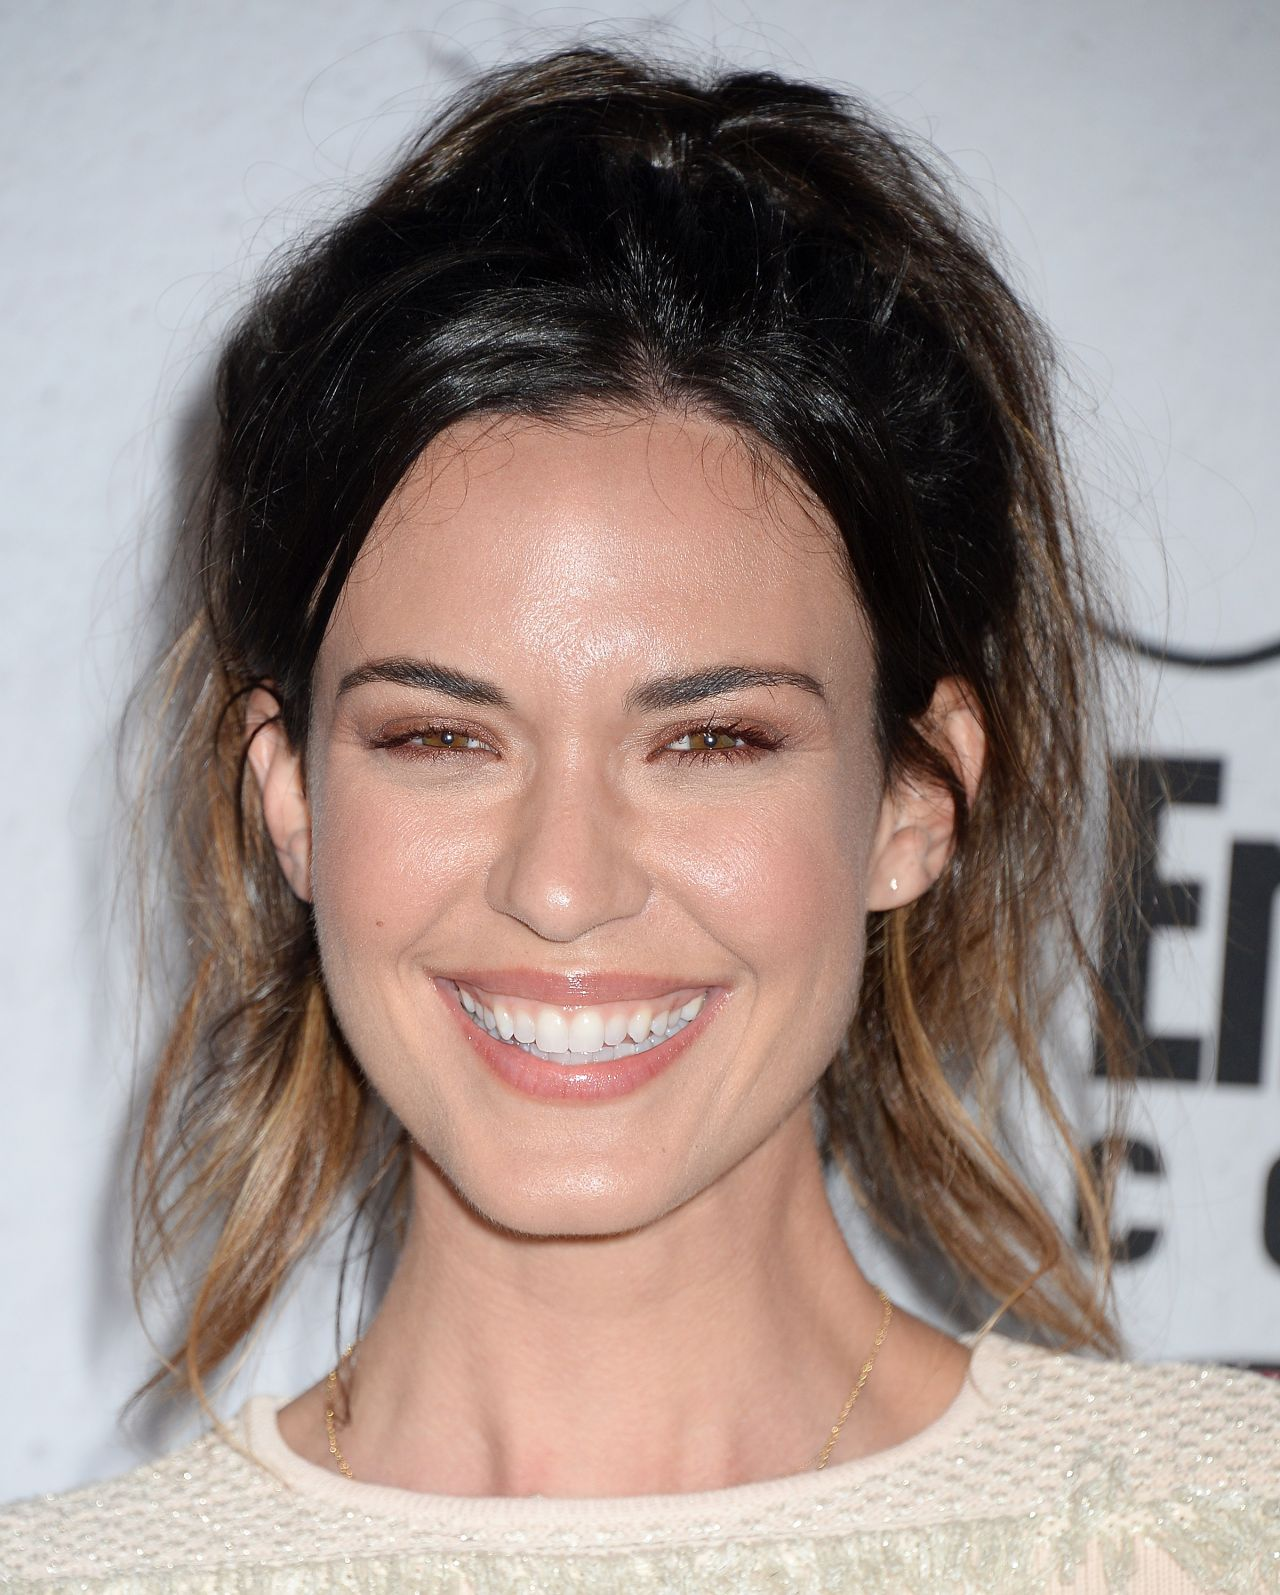 Odette Annable Latest Photos Celebmafia